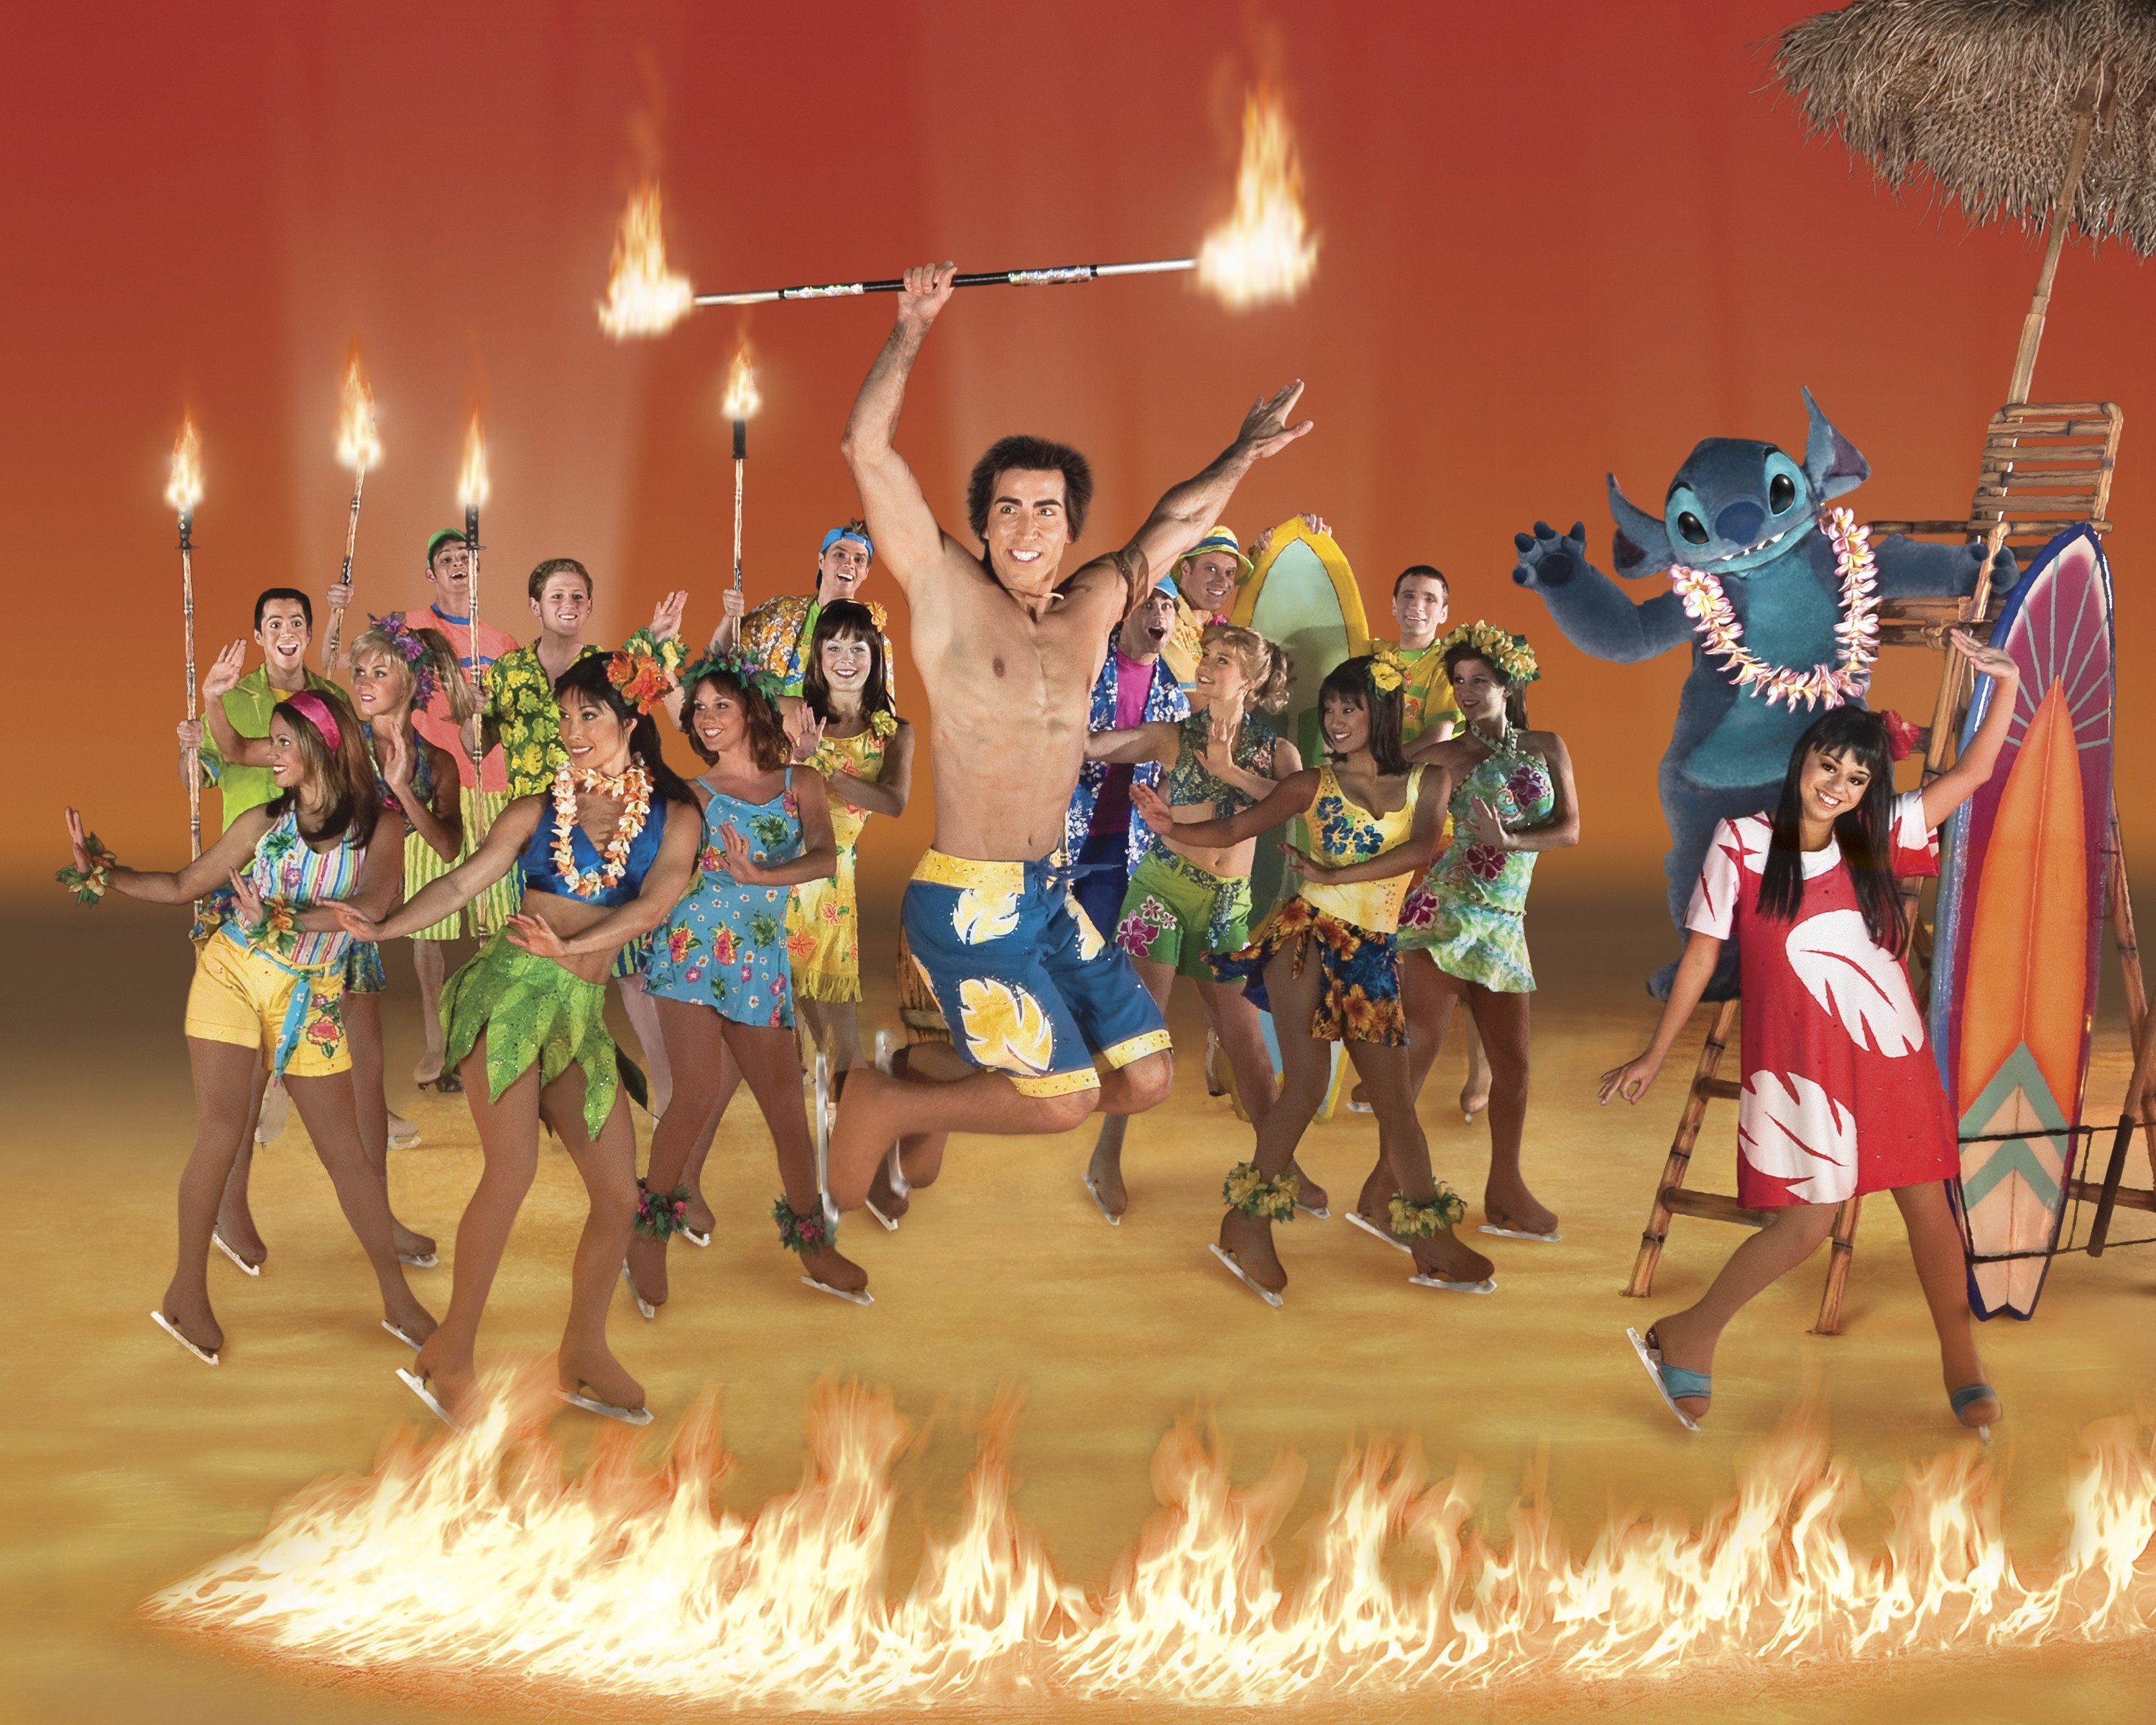 """Courtesy photoIce show: """"Disney on Ice presents Let's Celebrate"""" includes more than 50 characters"""